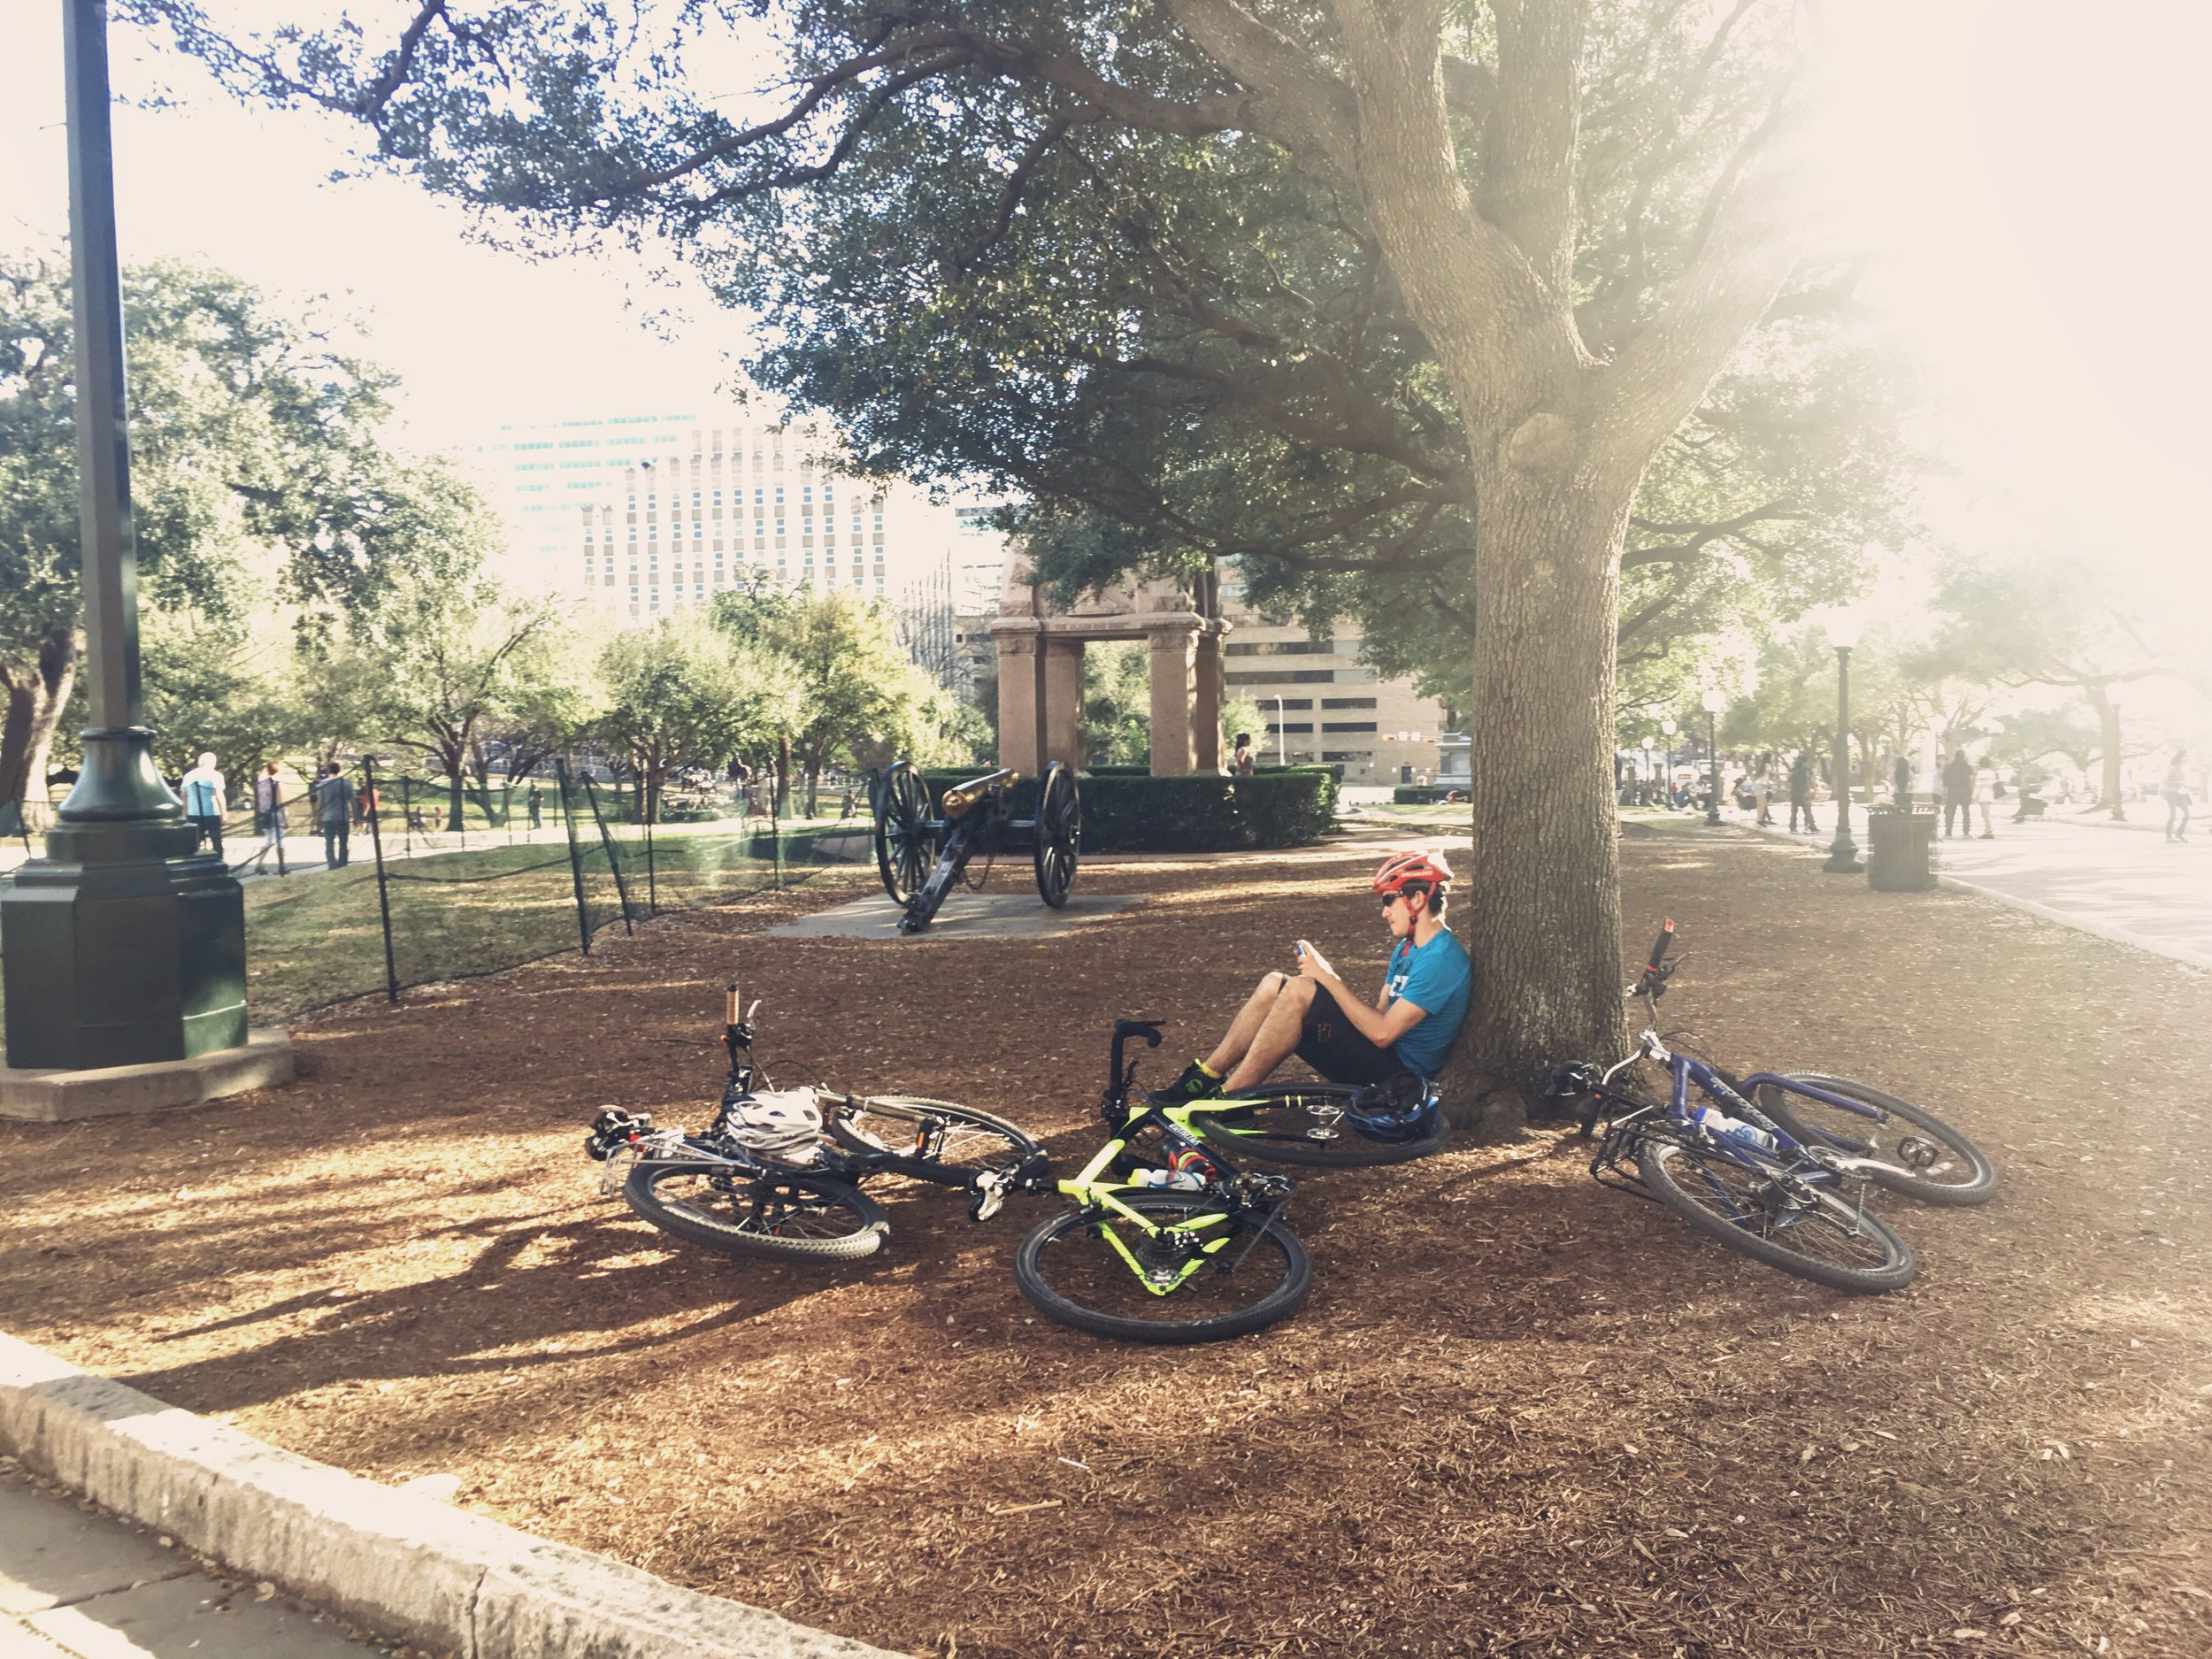 Things_to_do_in_Austin_bike_riding_travel_tips_by_Chanel_G_Photography